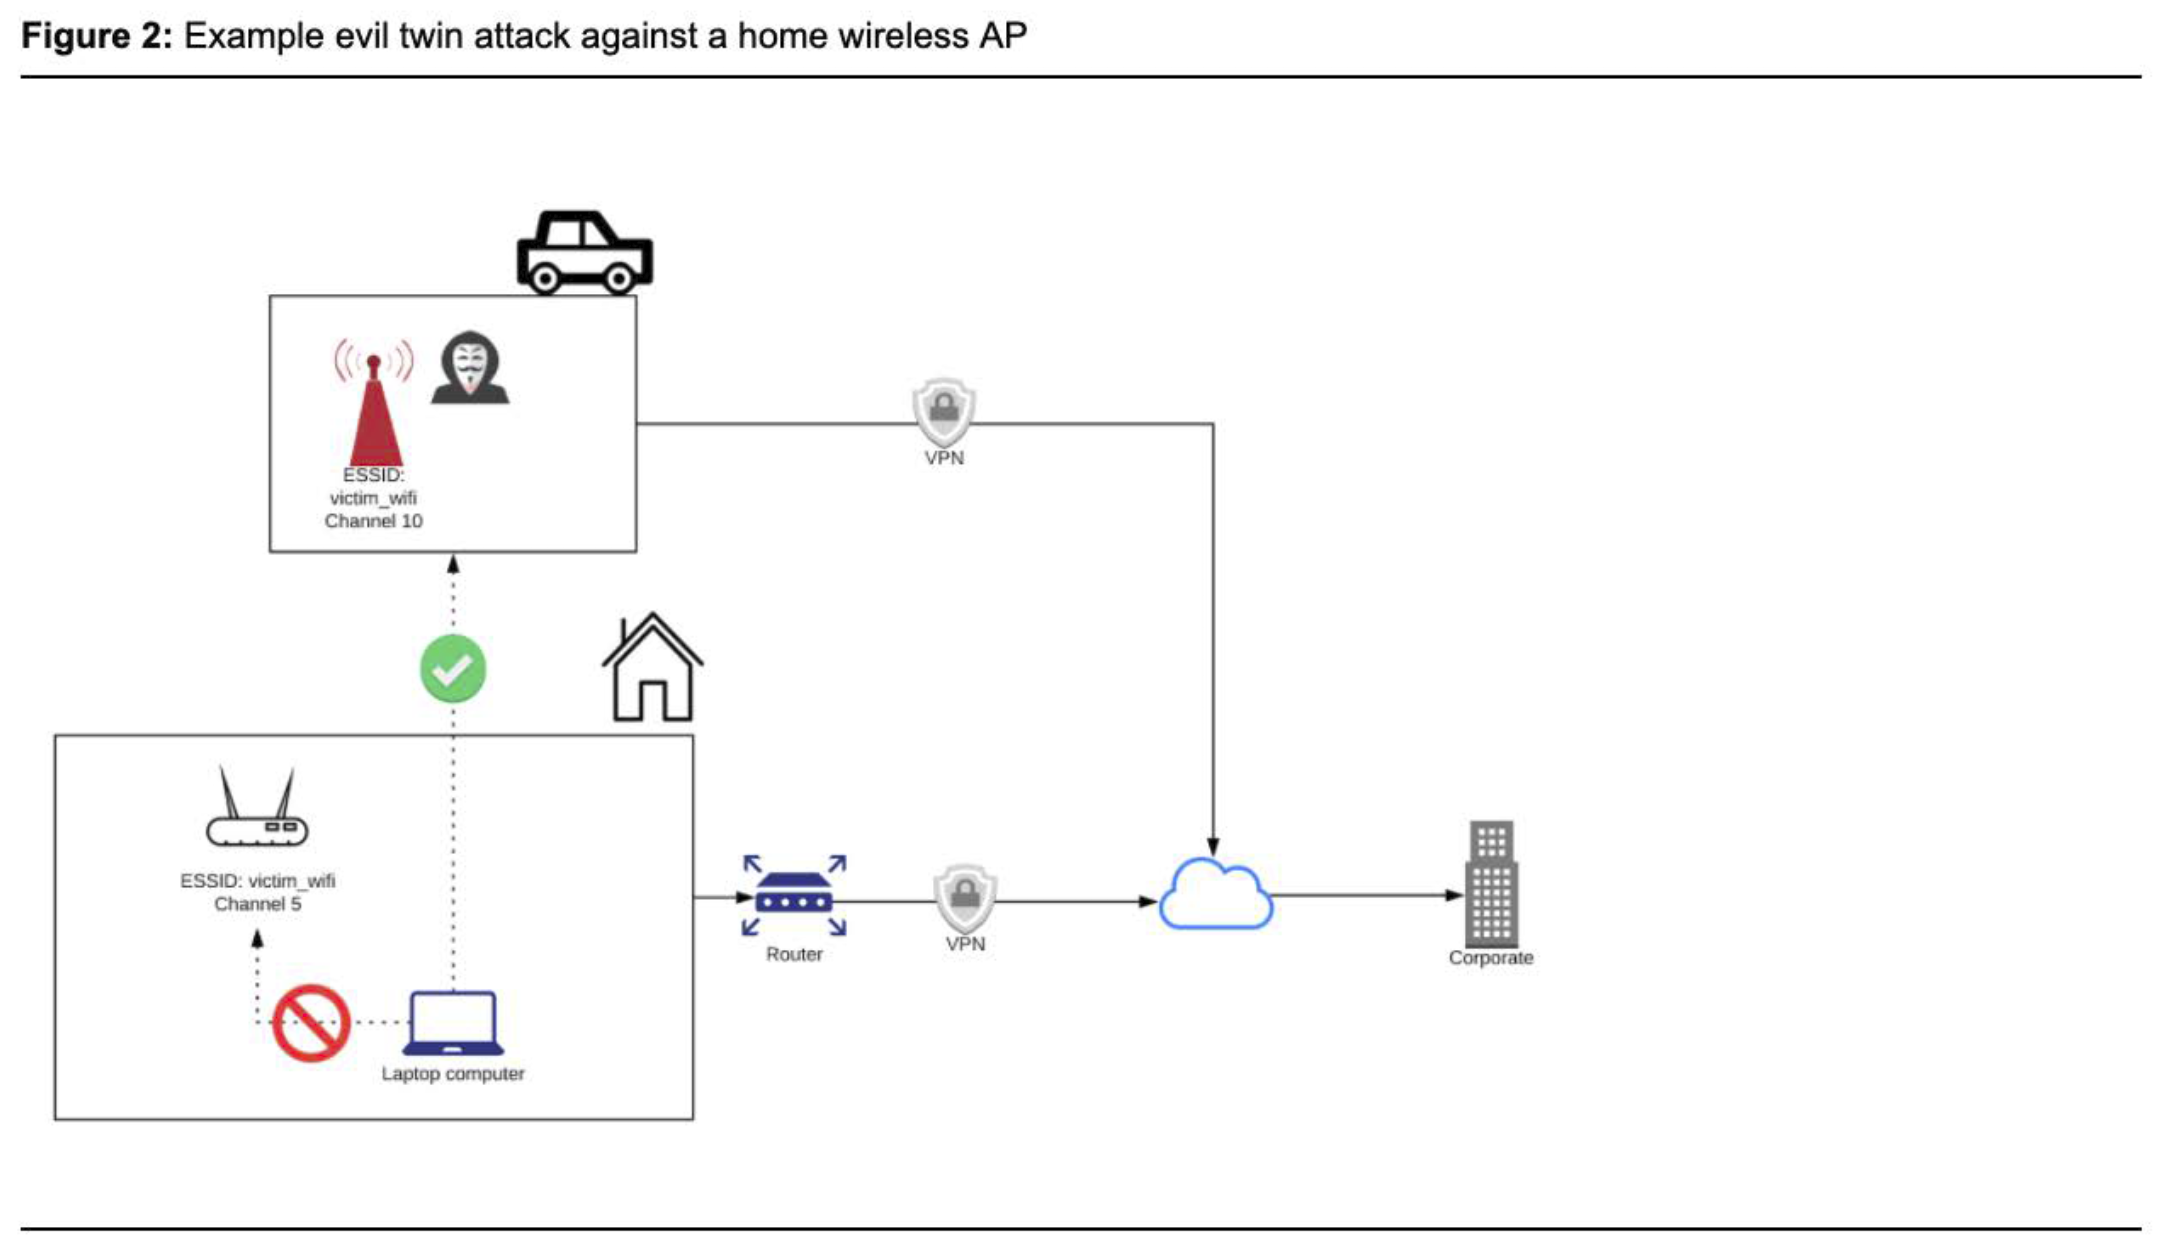 Example evil twin attack against a home wireless AP